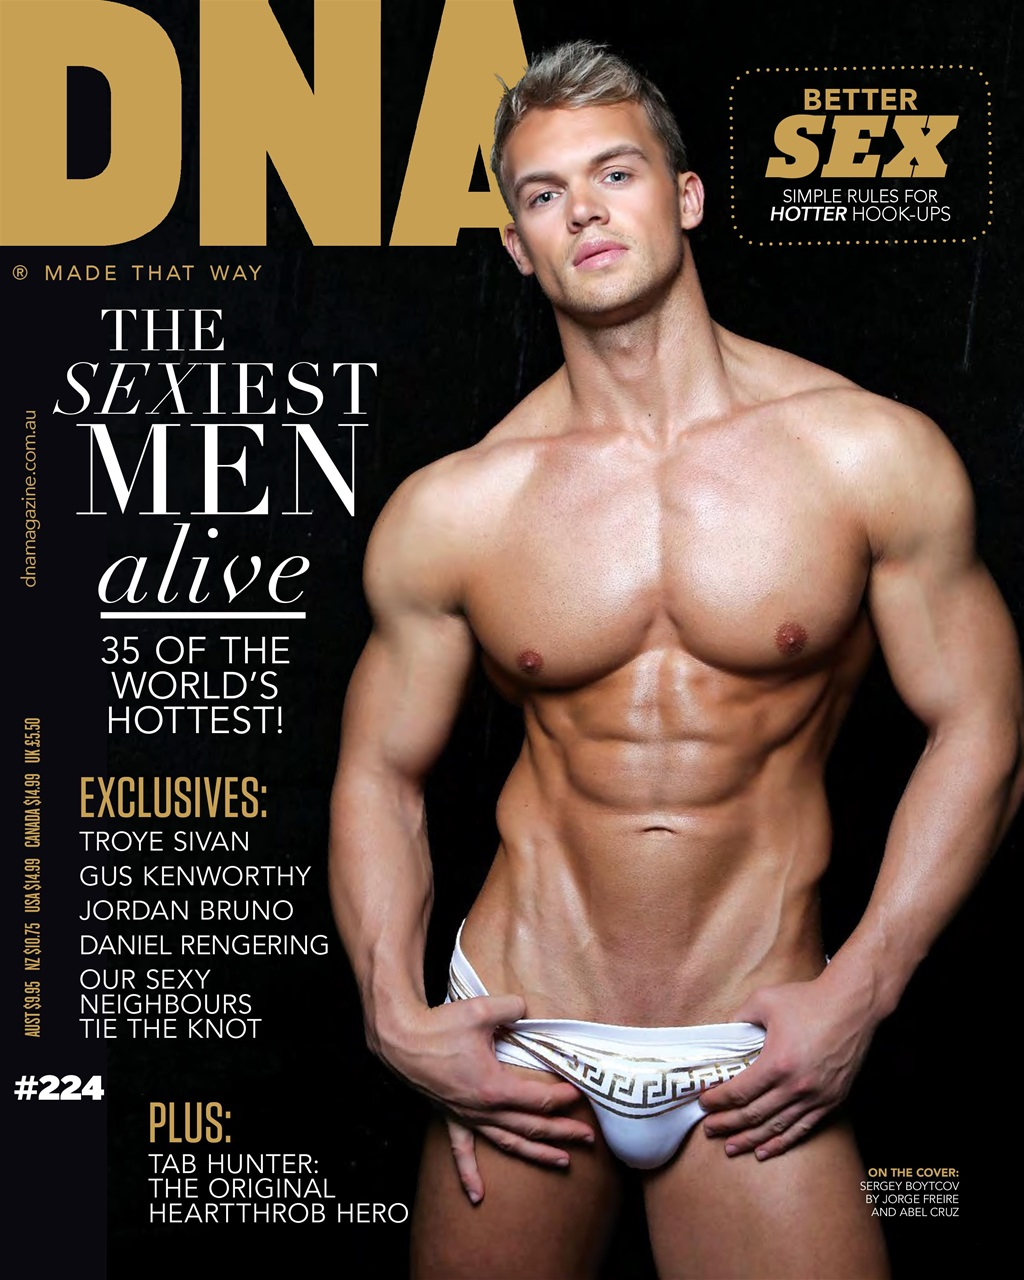 Plus Of Course Amazing Photography Beautiful Men Tons To Read And Dont Forget Those Sexiest Alive Cheers